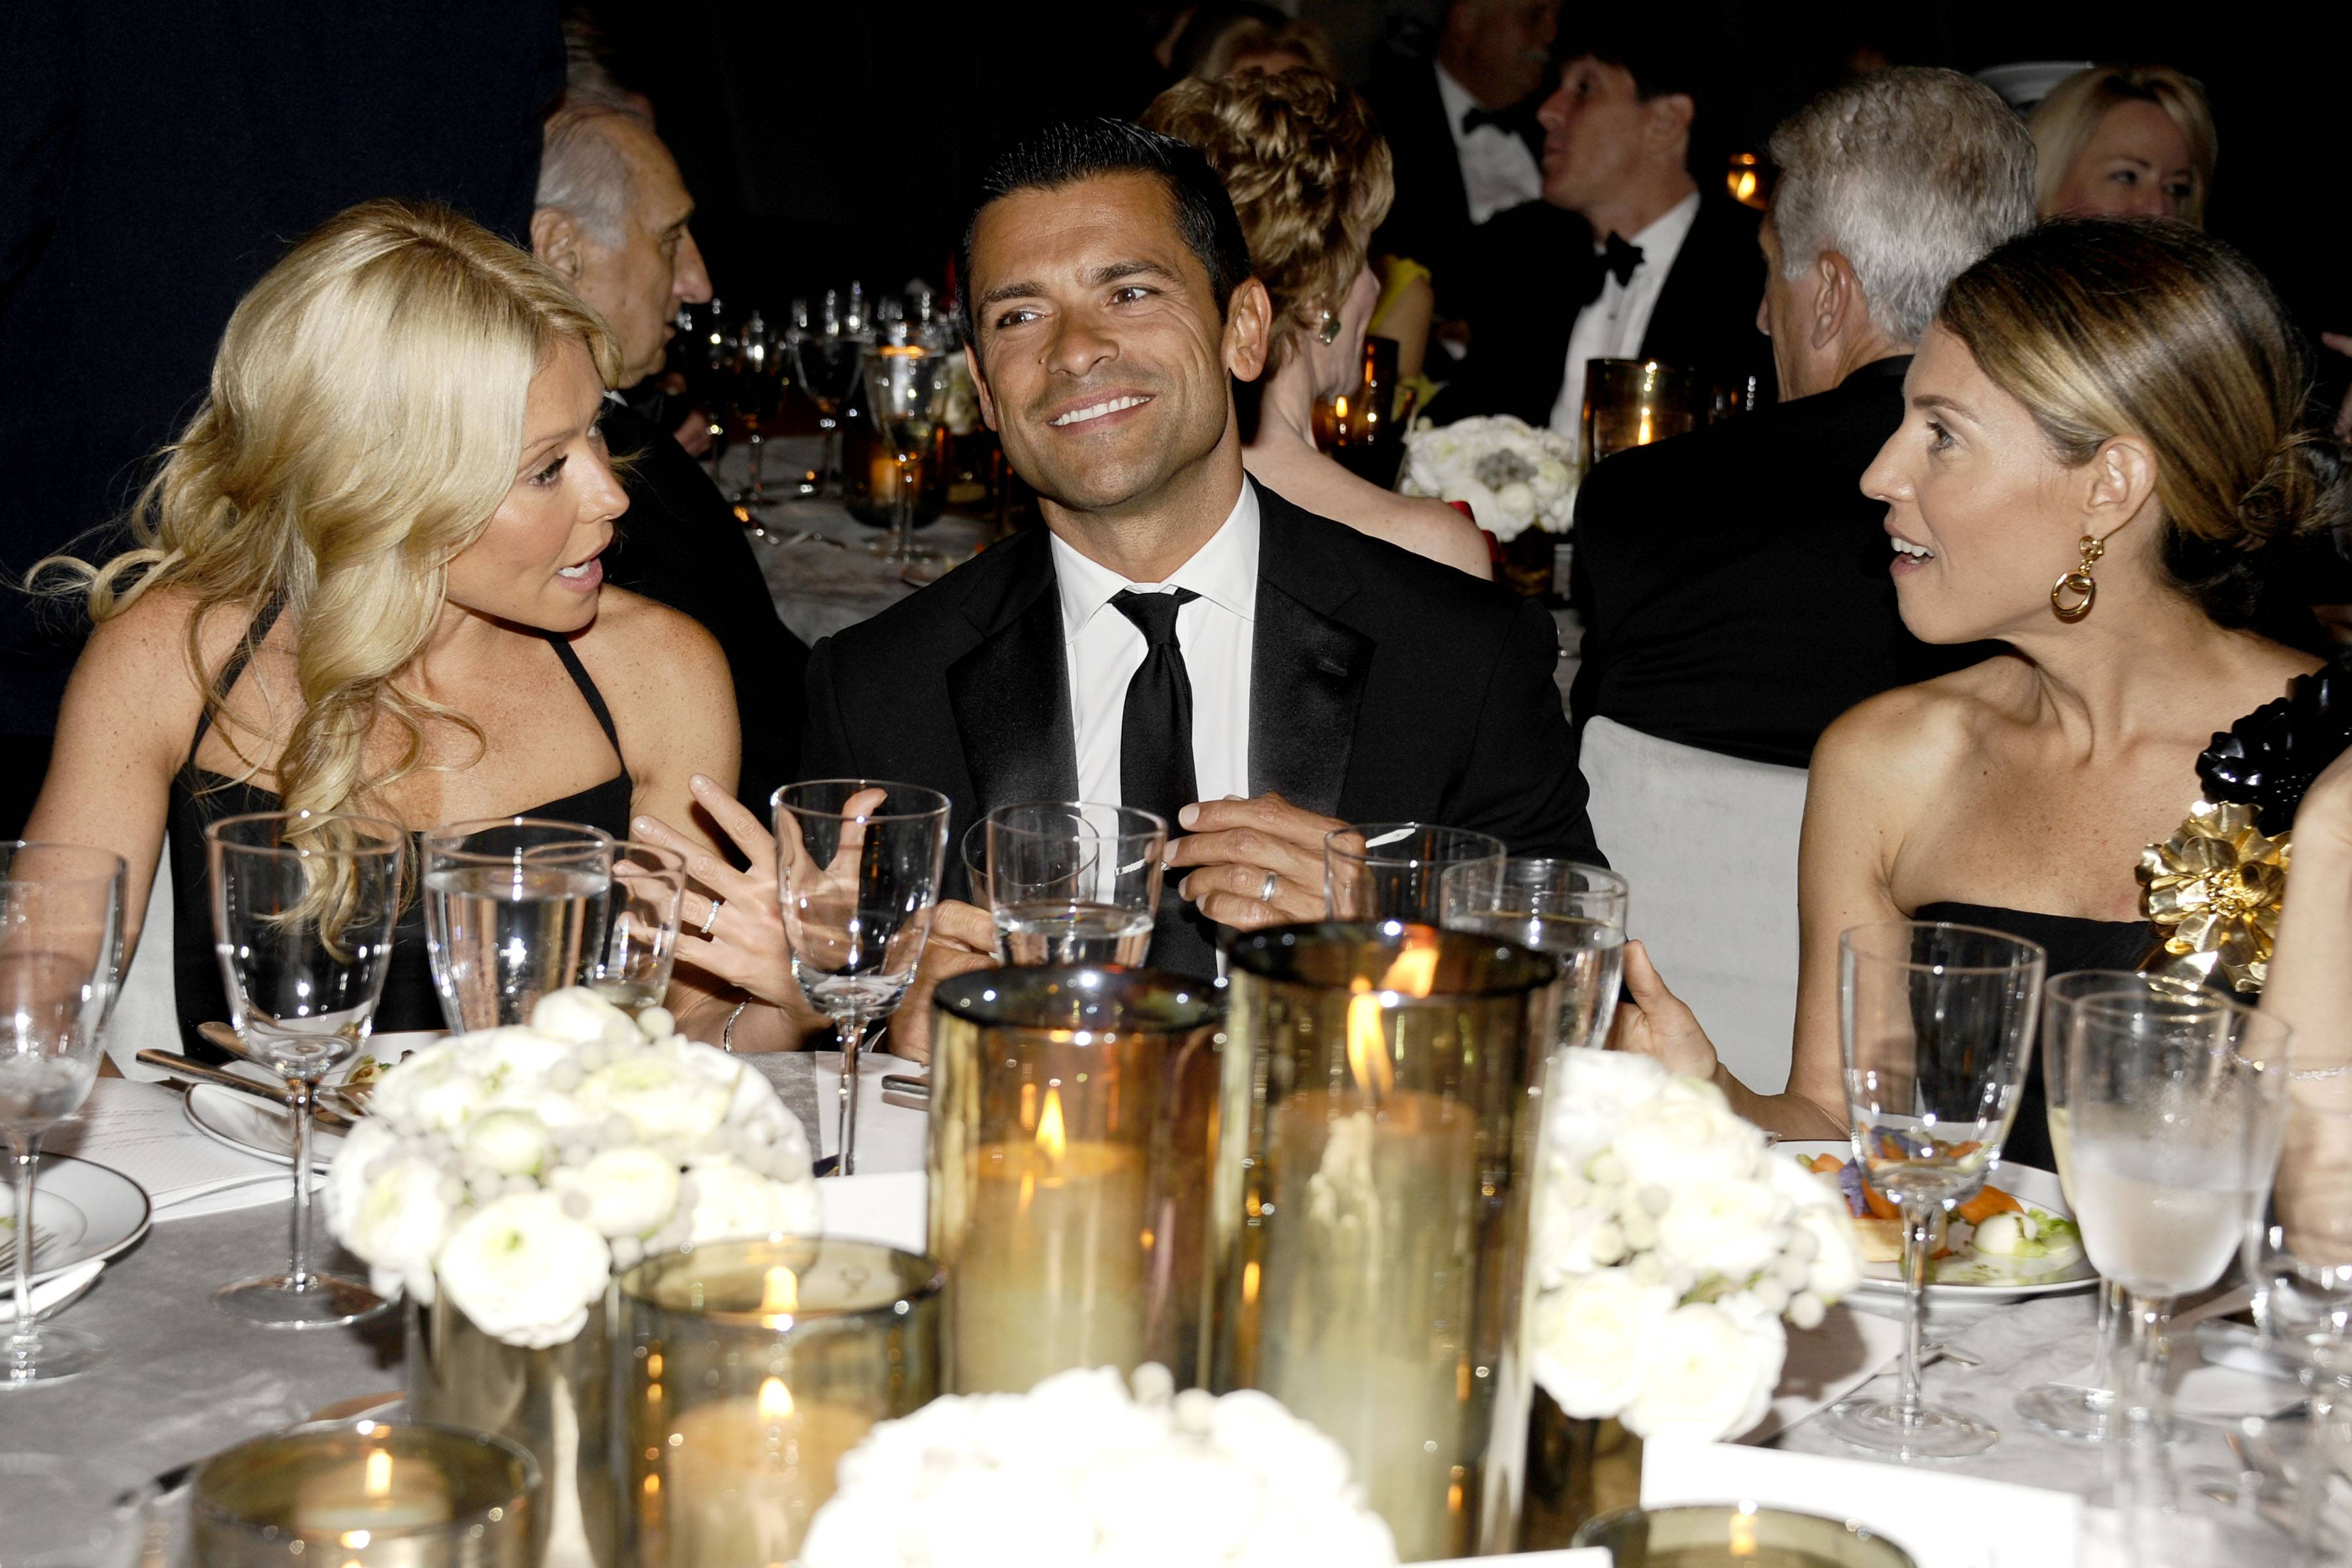 Kelly Ripa, Mark Consuelos, Caryn Zucker